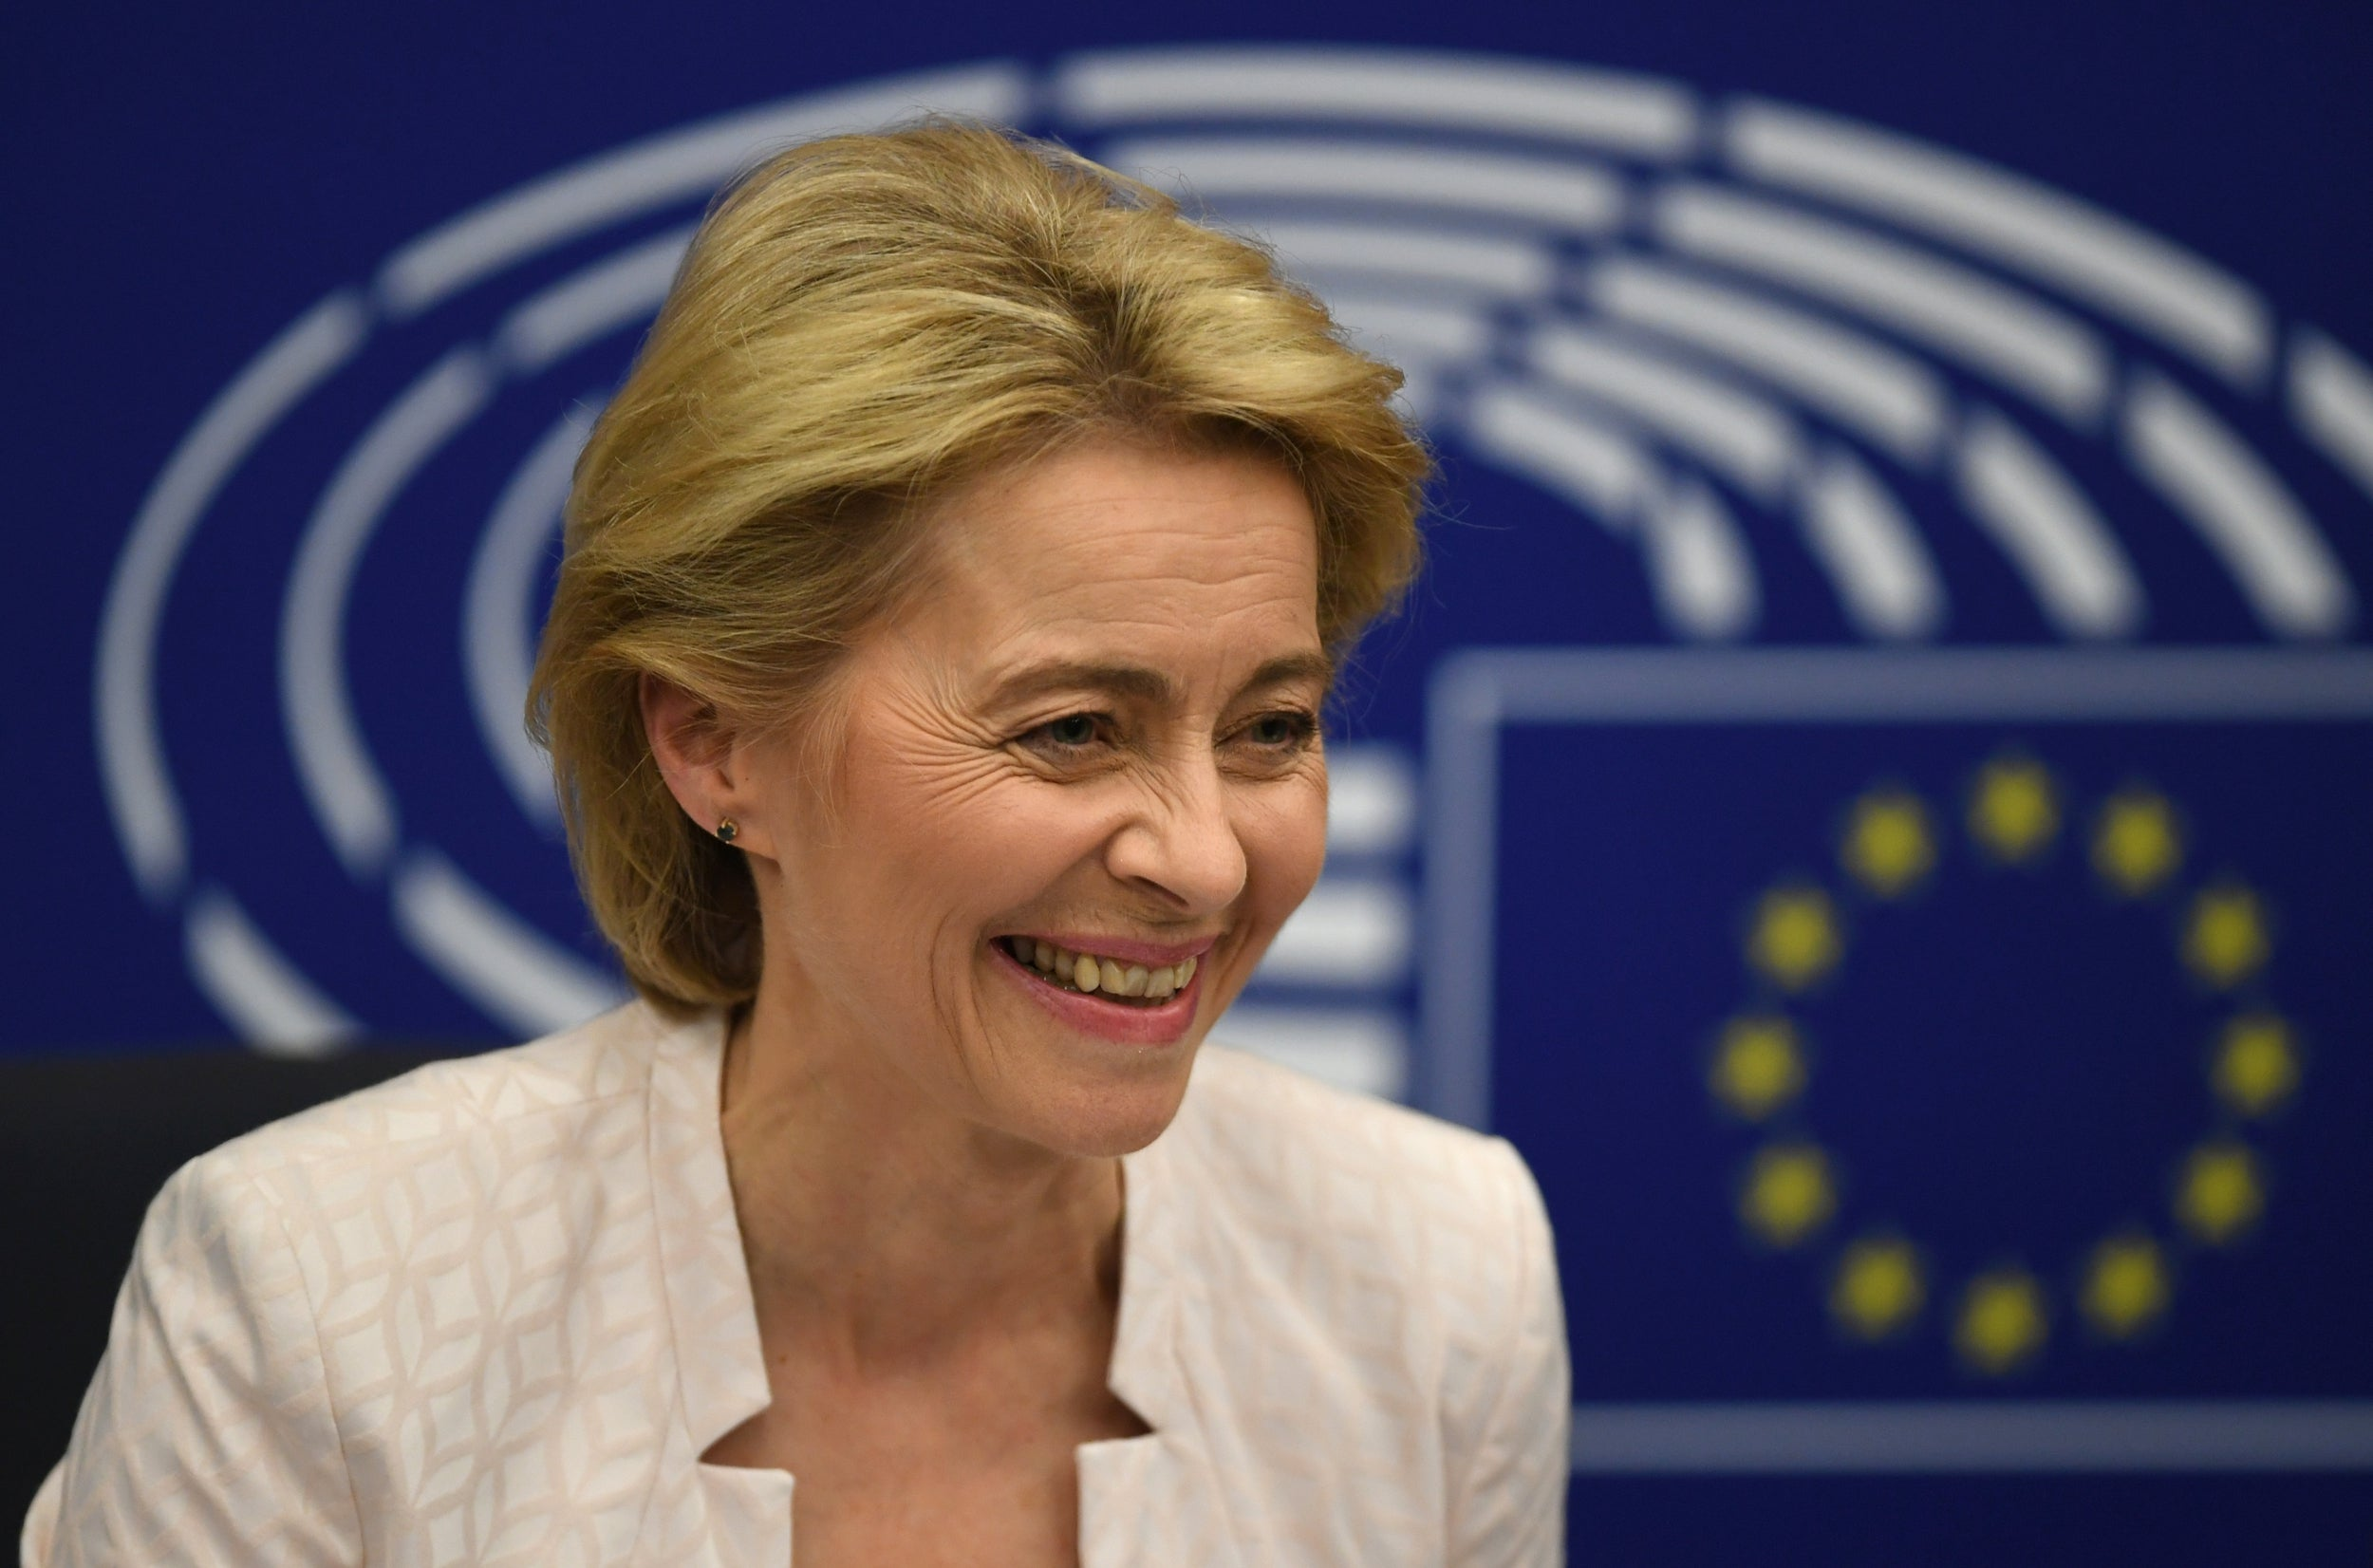 Ursula von der Leyen: Who is the first woman president of the EU commission? 3